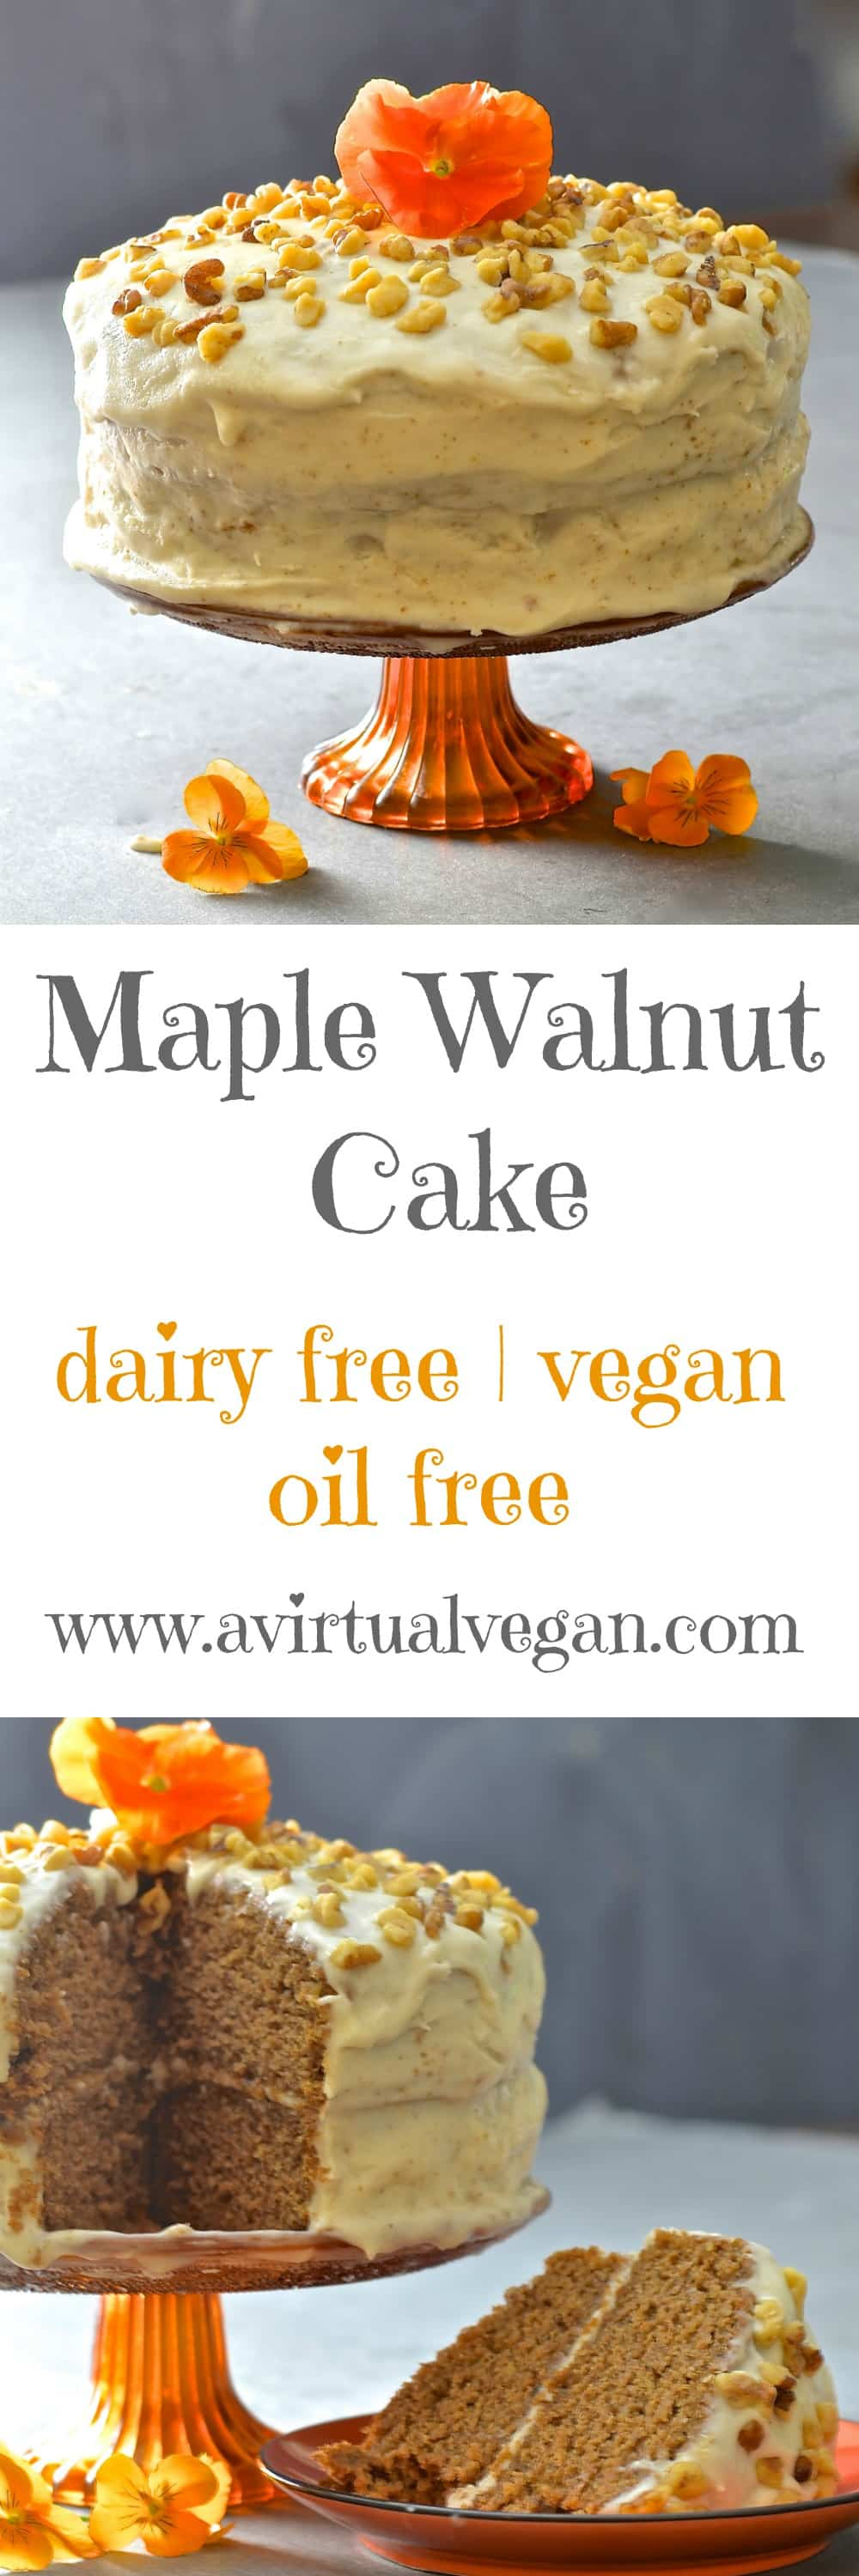 Tender, moist nutty sponge sandwiched together with creamy maple infused frosting. Completely dairy, egg & oil free yet perfectly sweet & decadent, this maple walnut cake is total perfection!